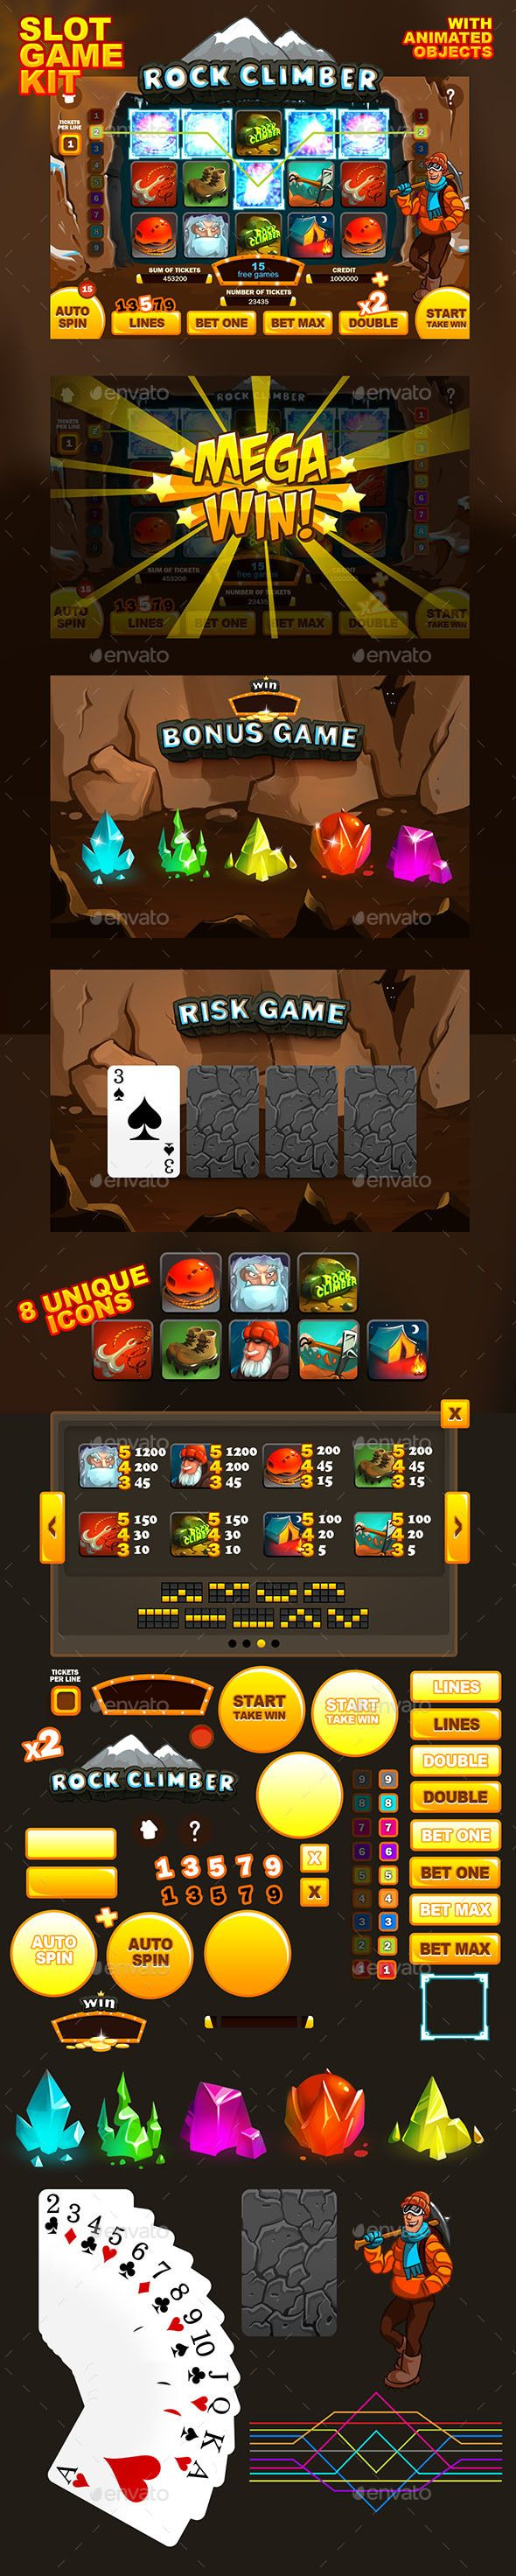 Rock climber casino games casino royale james bond theme mp3